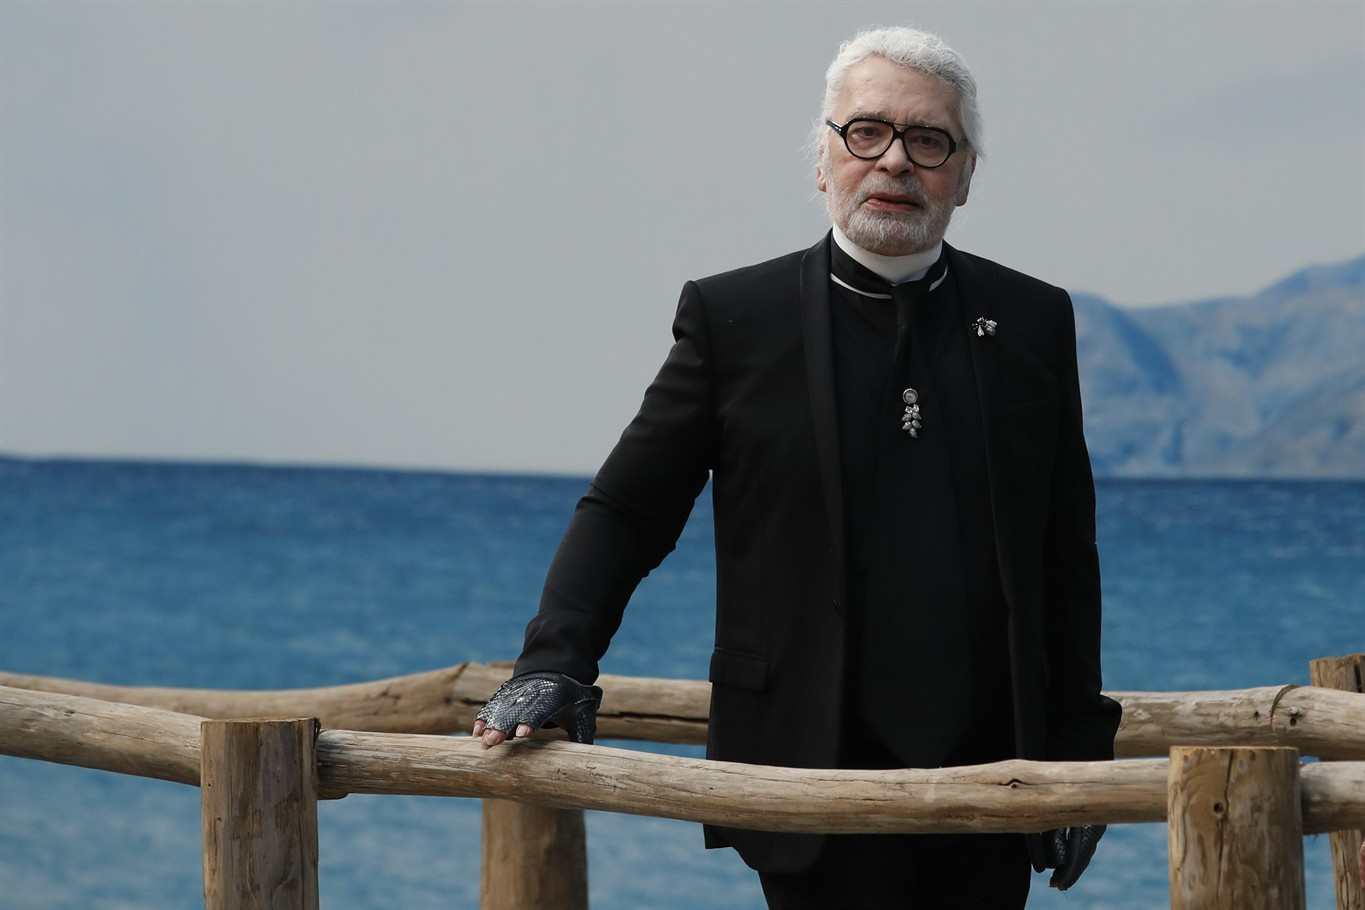 79dc89e156a Fashion designer Karl Lagerfeld poses after the presentation of Chanel  Spring Summer 2019 ready-to-wear fashion collection in Paris